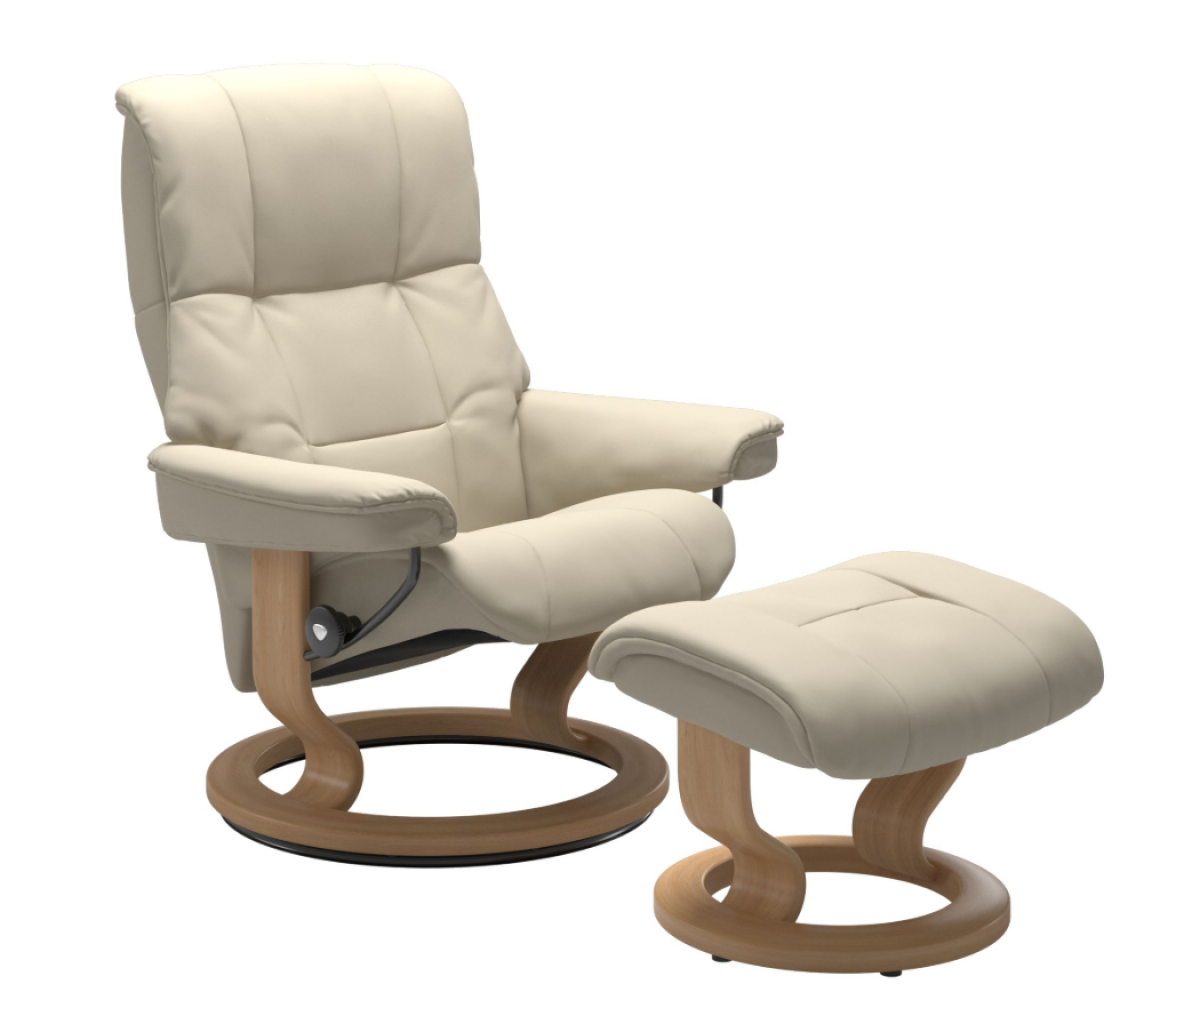 Stressless Mayfair Cream Medium Recliner